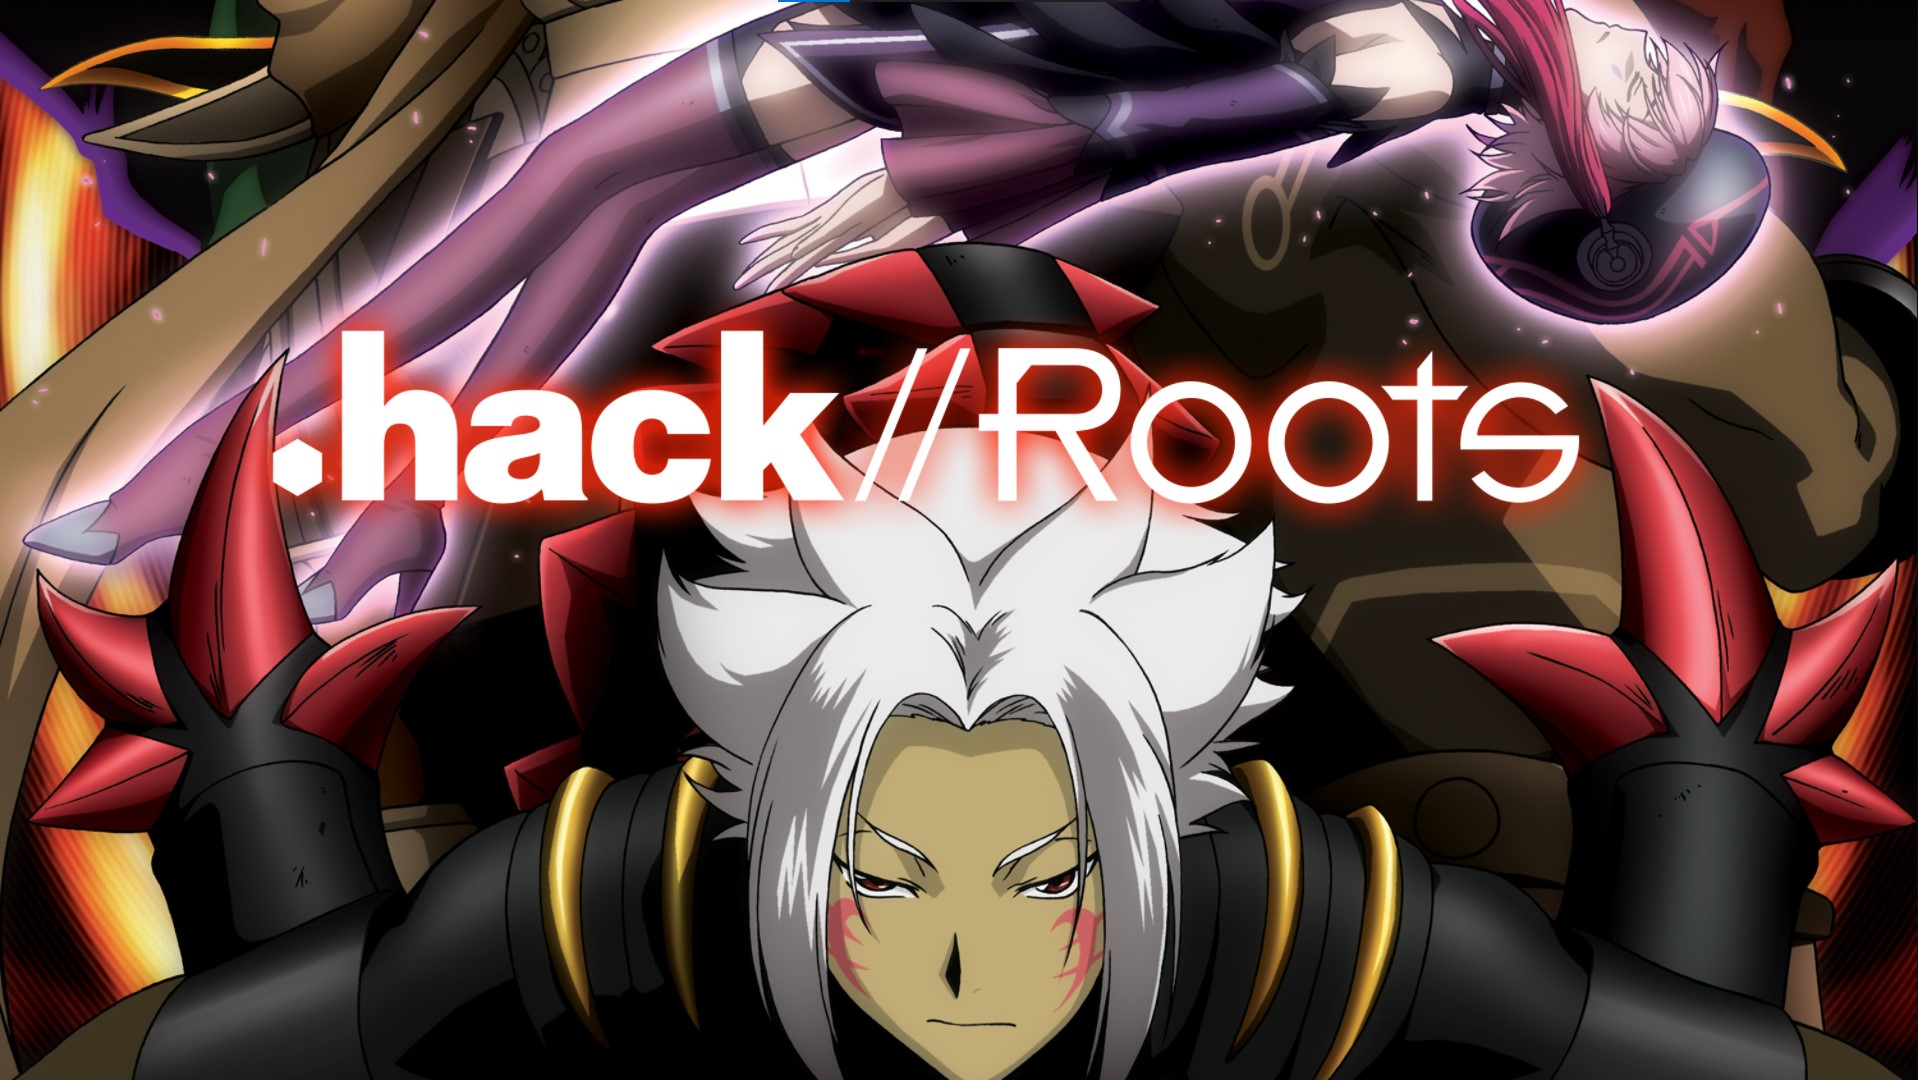 .hack//Roots- .hack watch order